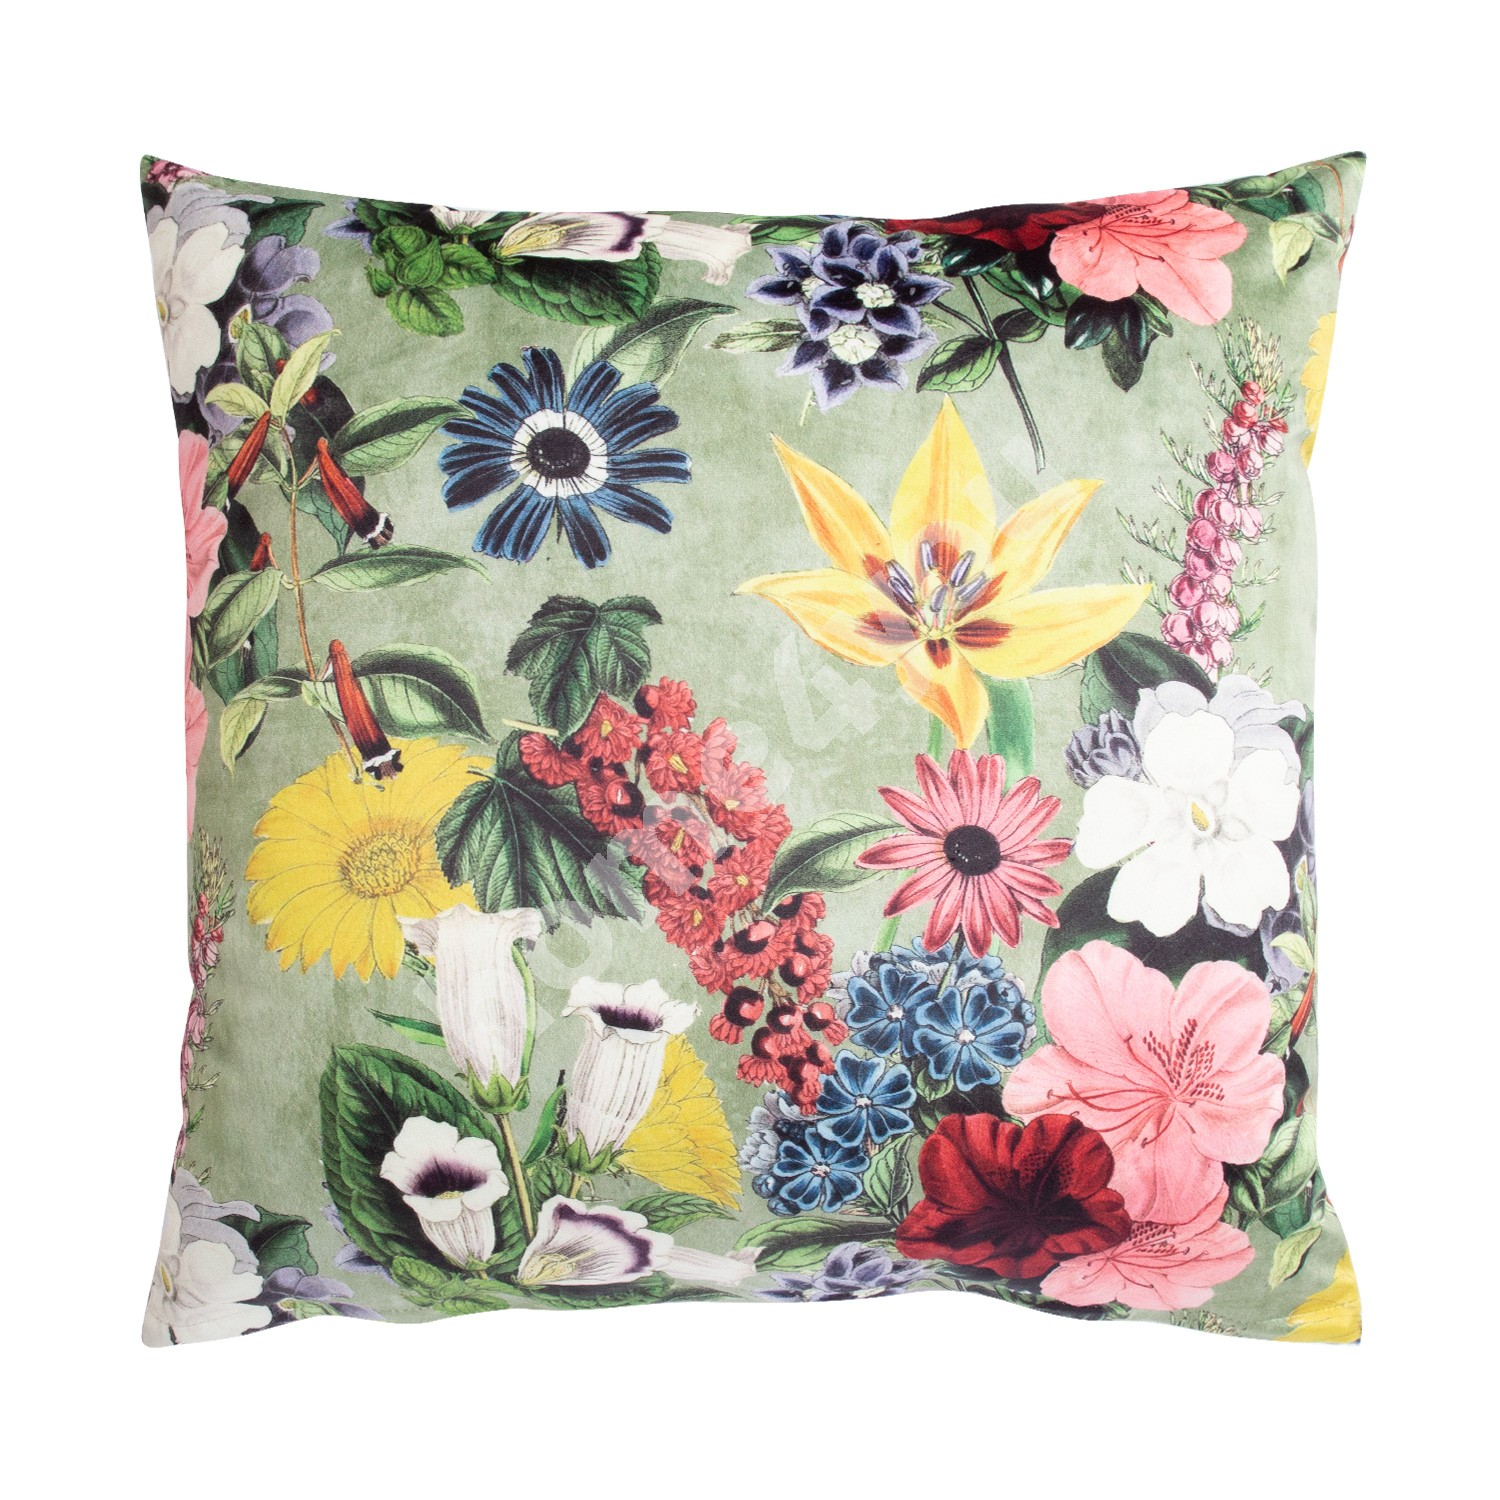 Pillow HOLLY 45x45cm flowers